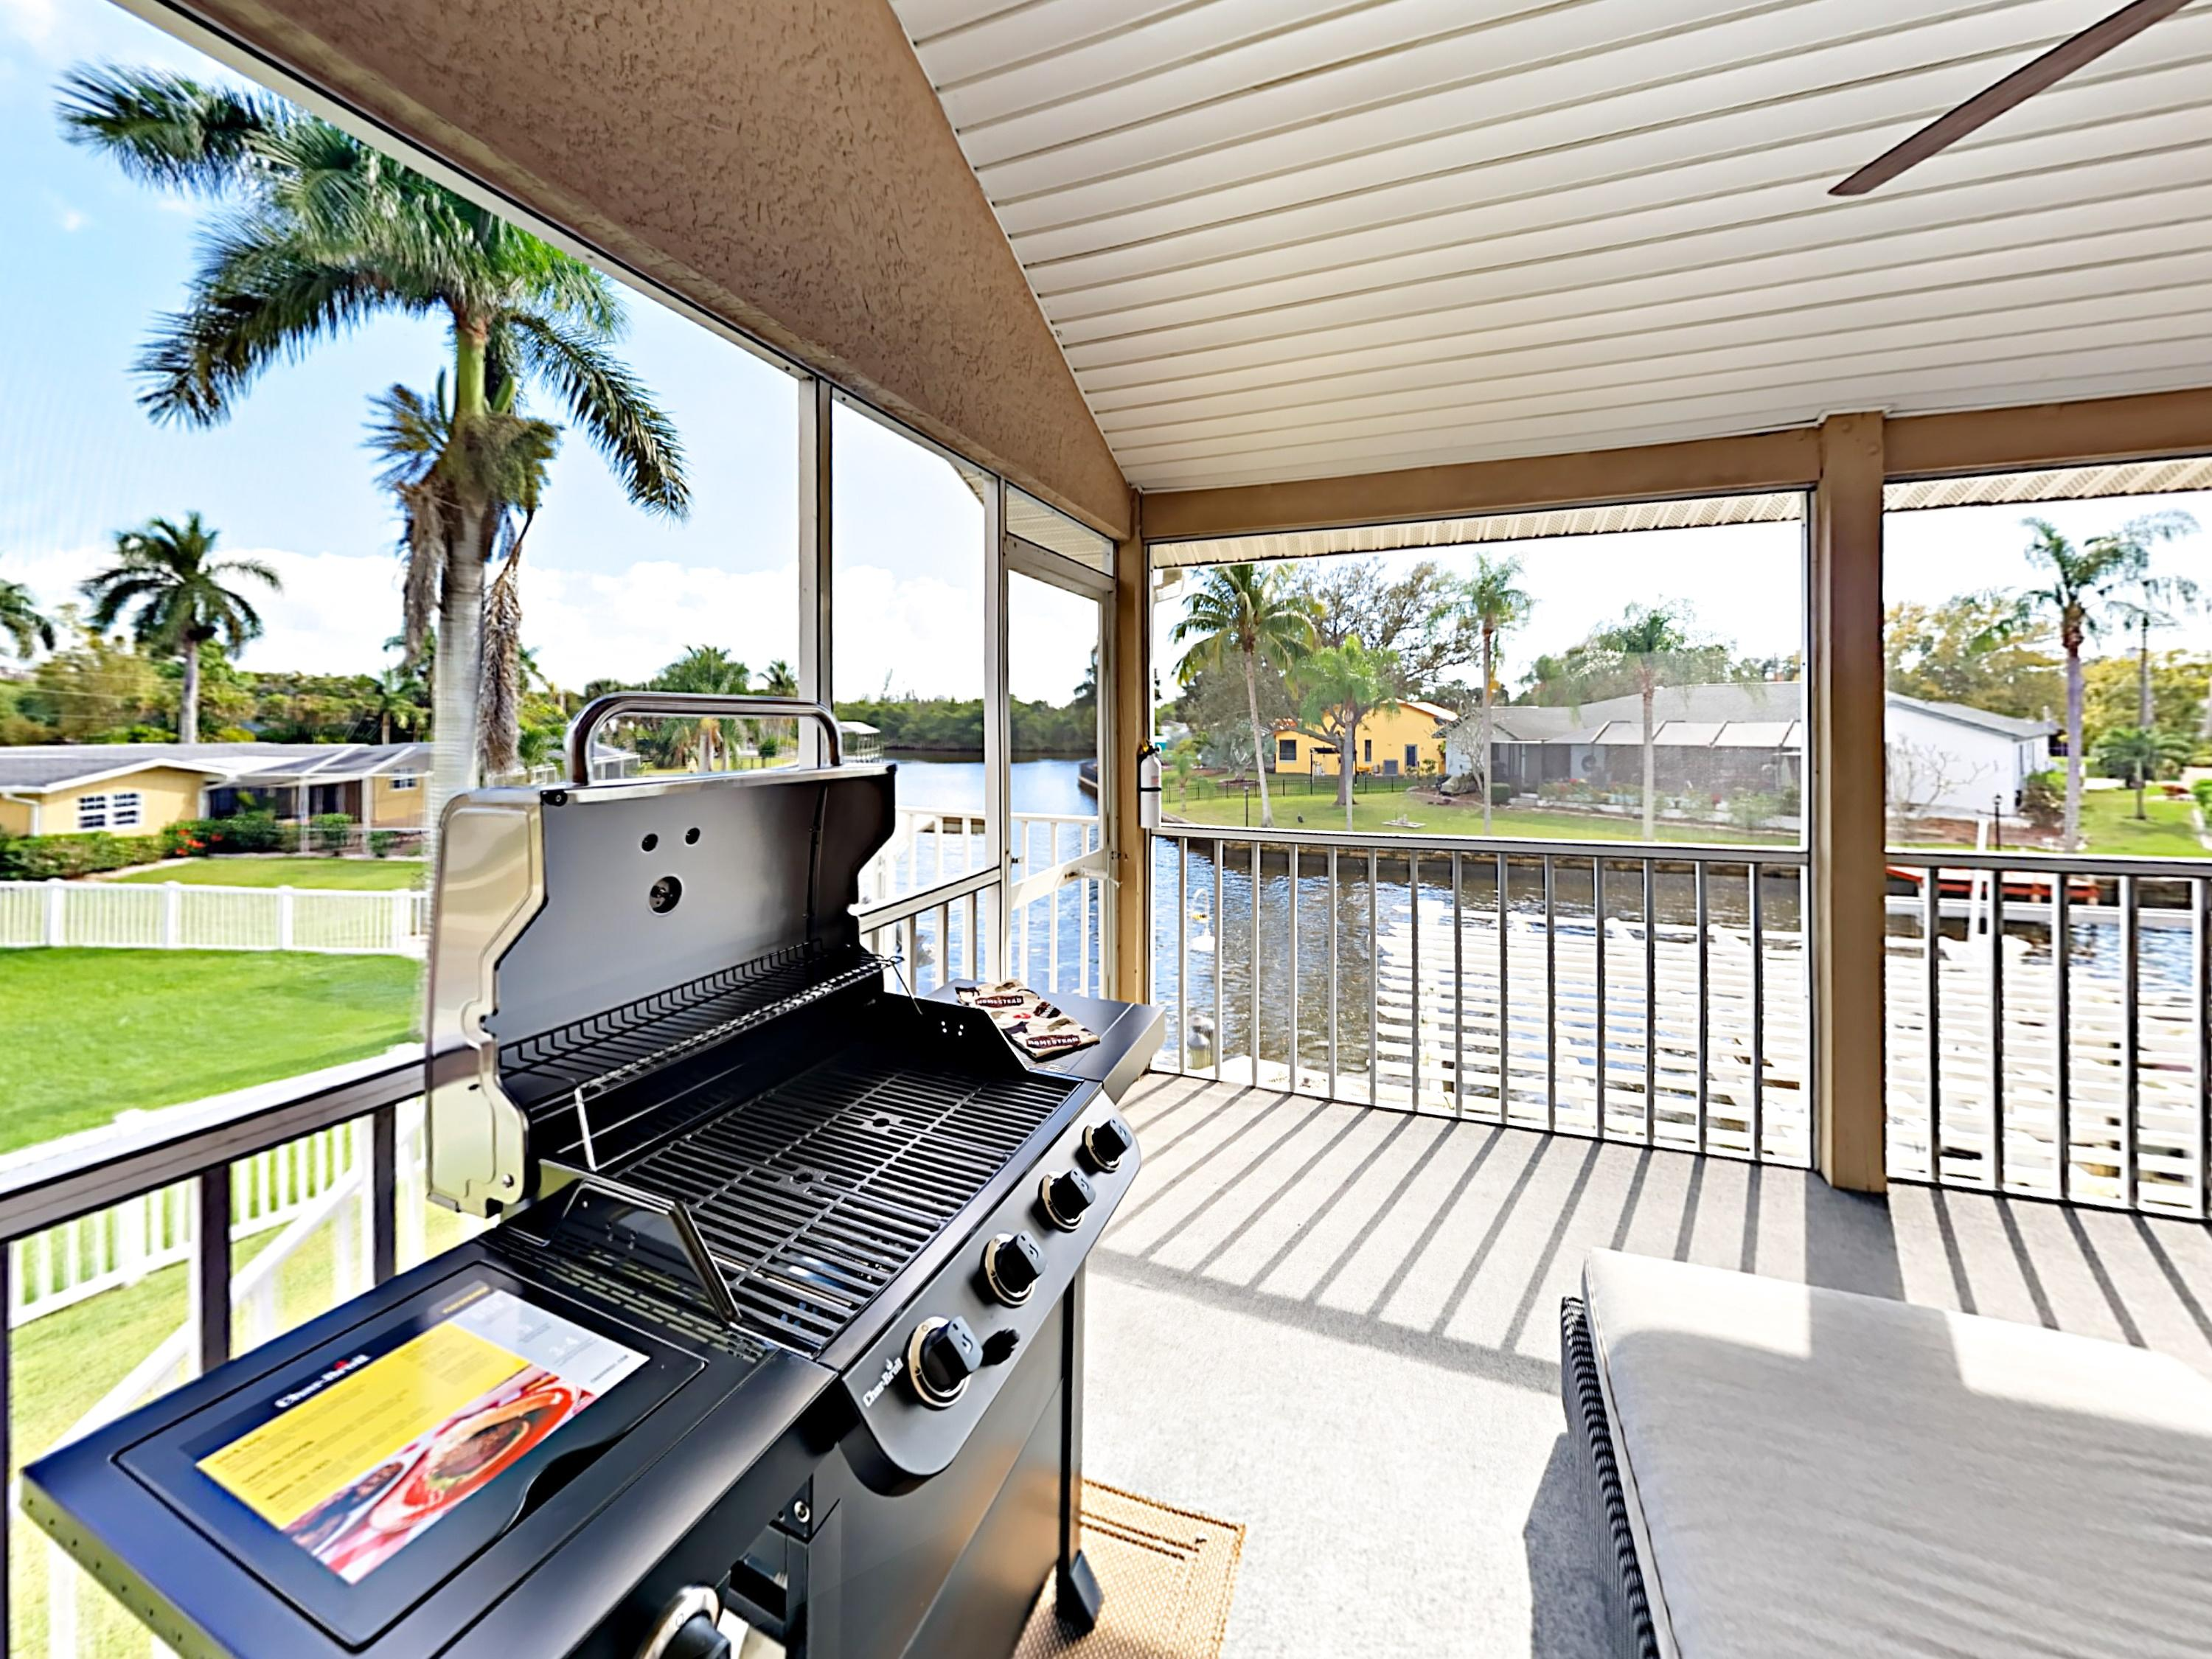 Make use of the grill on the 2nd floor balcony.